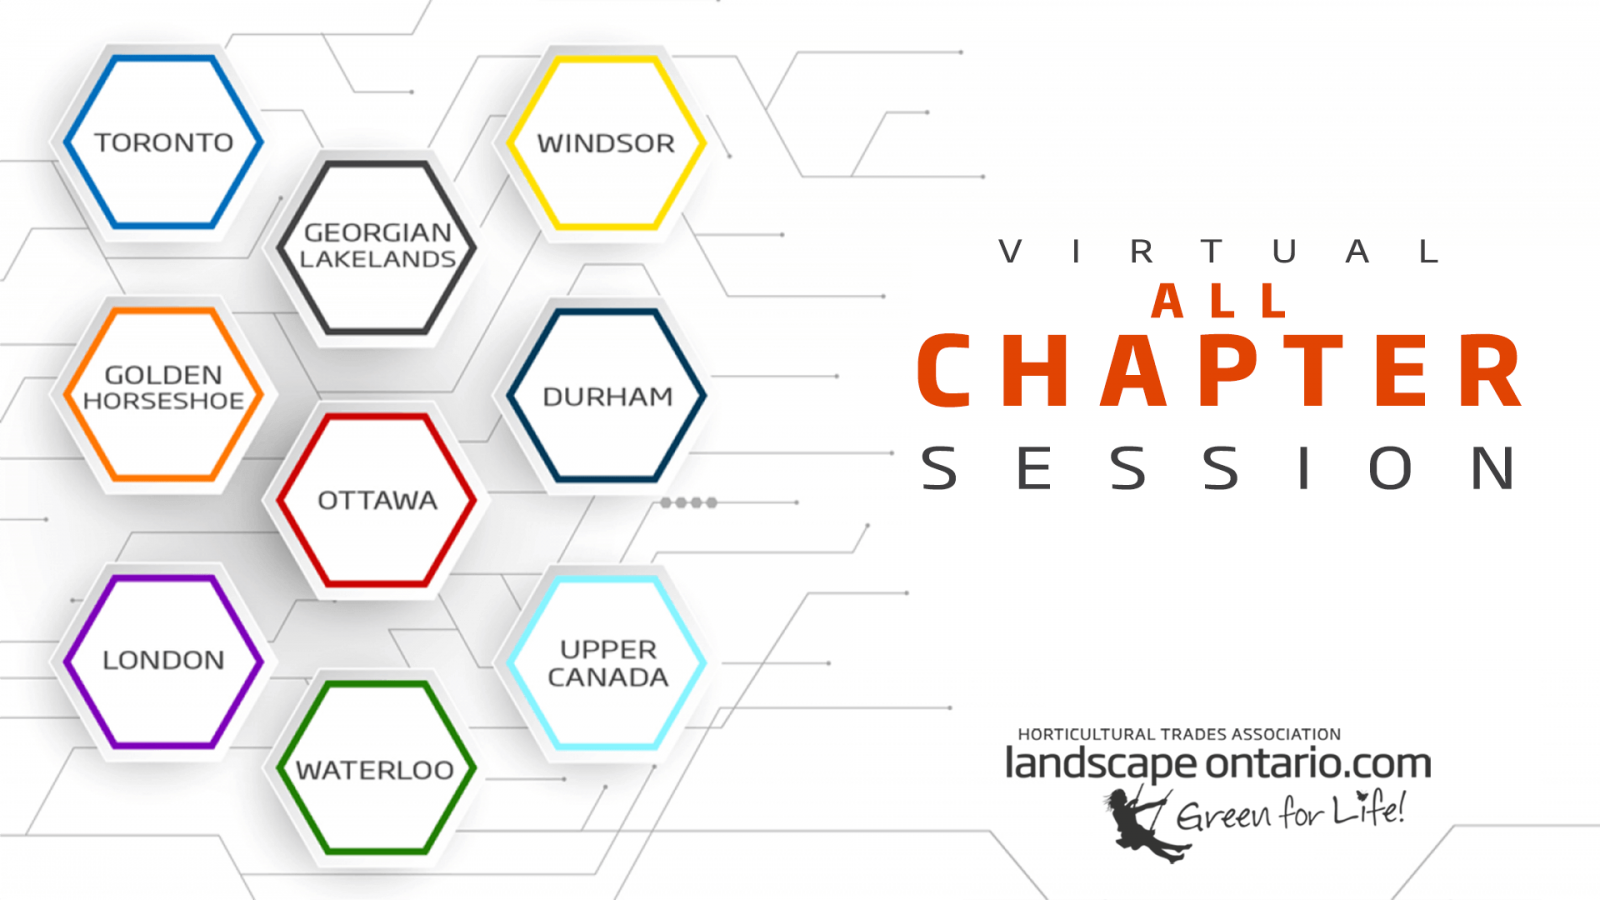 All Chapter Session October 7, 2021